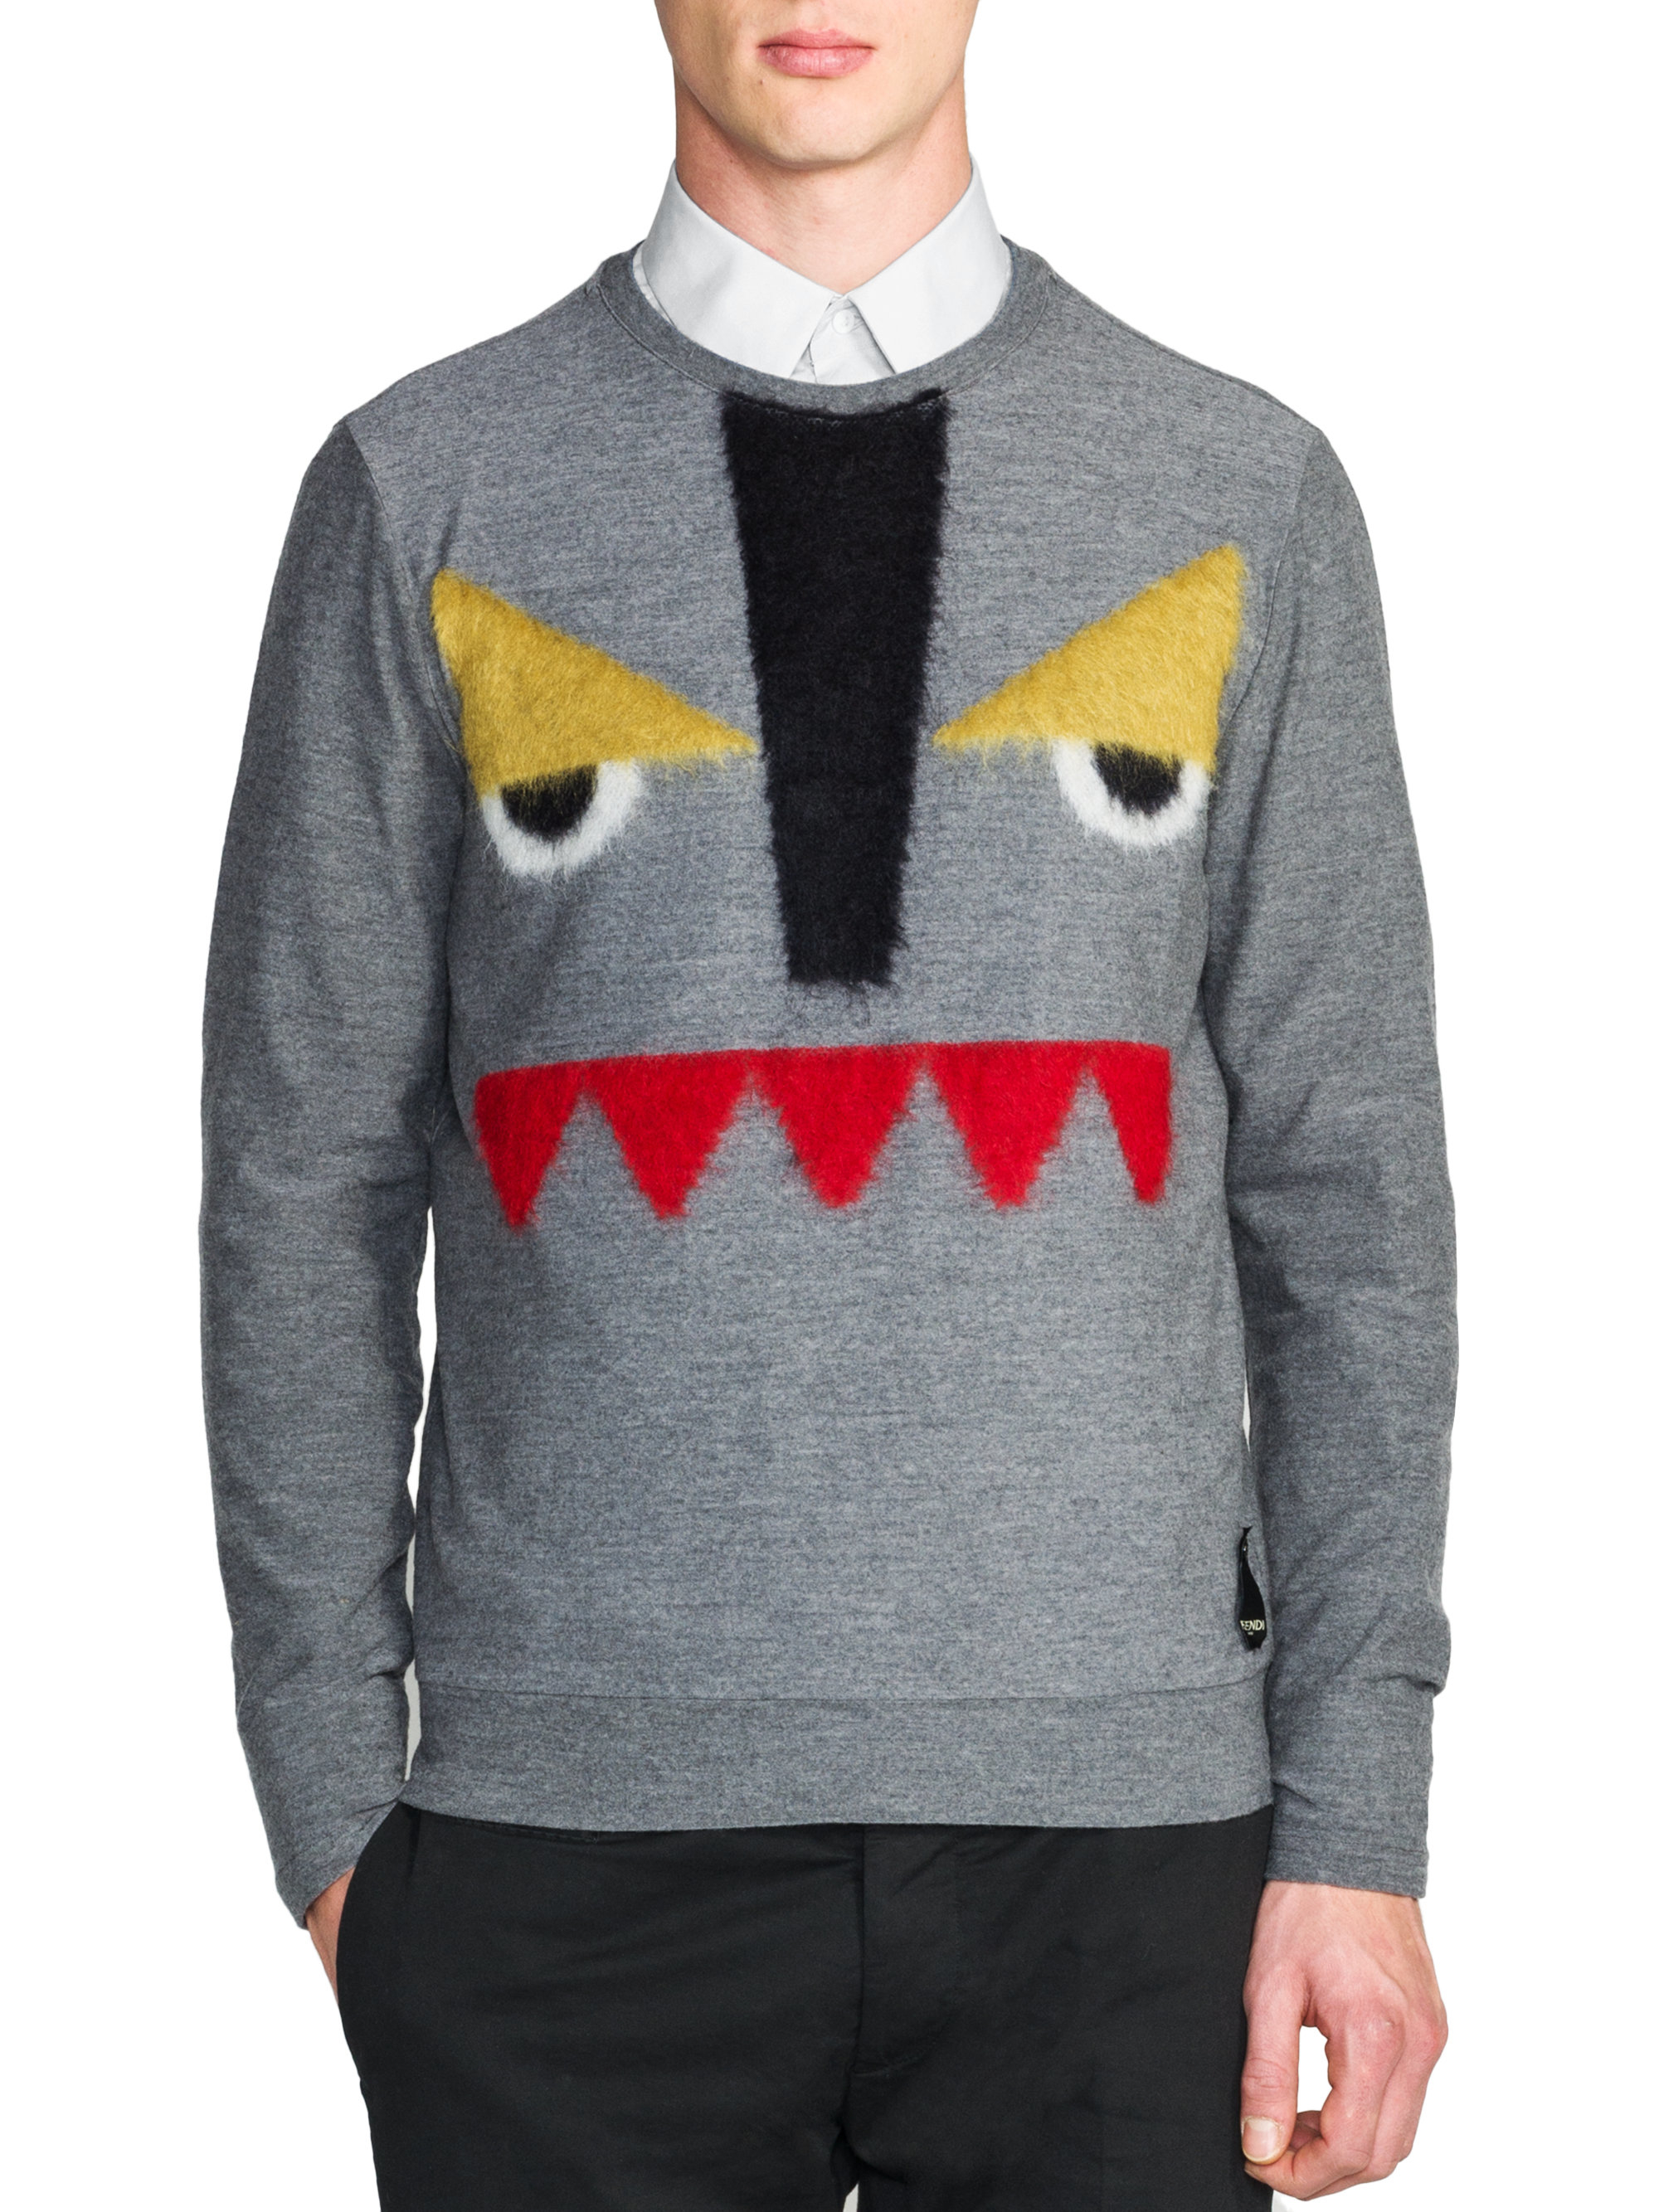 Lyst - Fendi Monster Crewneck Sweater in Gray for Men 35304f156ceb8